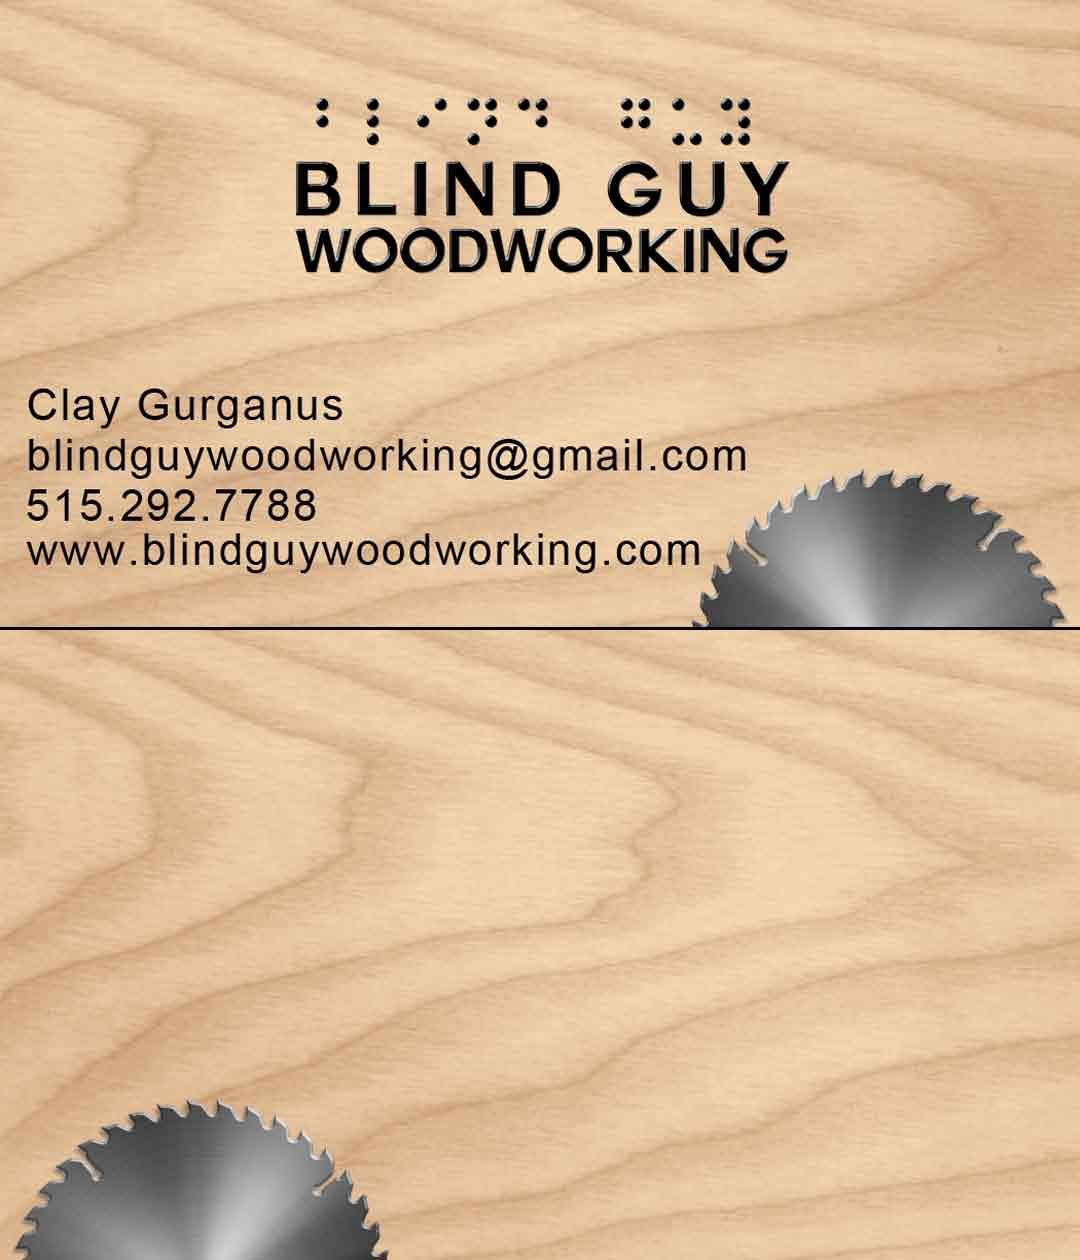 Blind guy woodworking business card by marczsewski on deviantart blind guy woodworking business card by marczsewski colourmoves